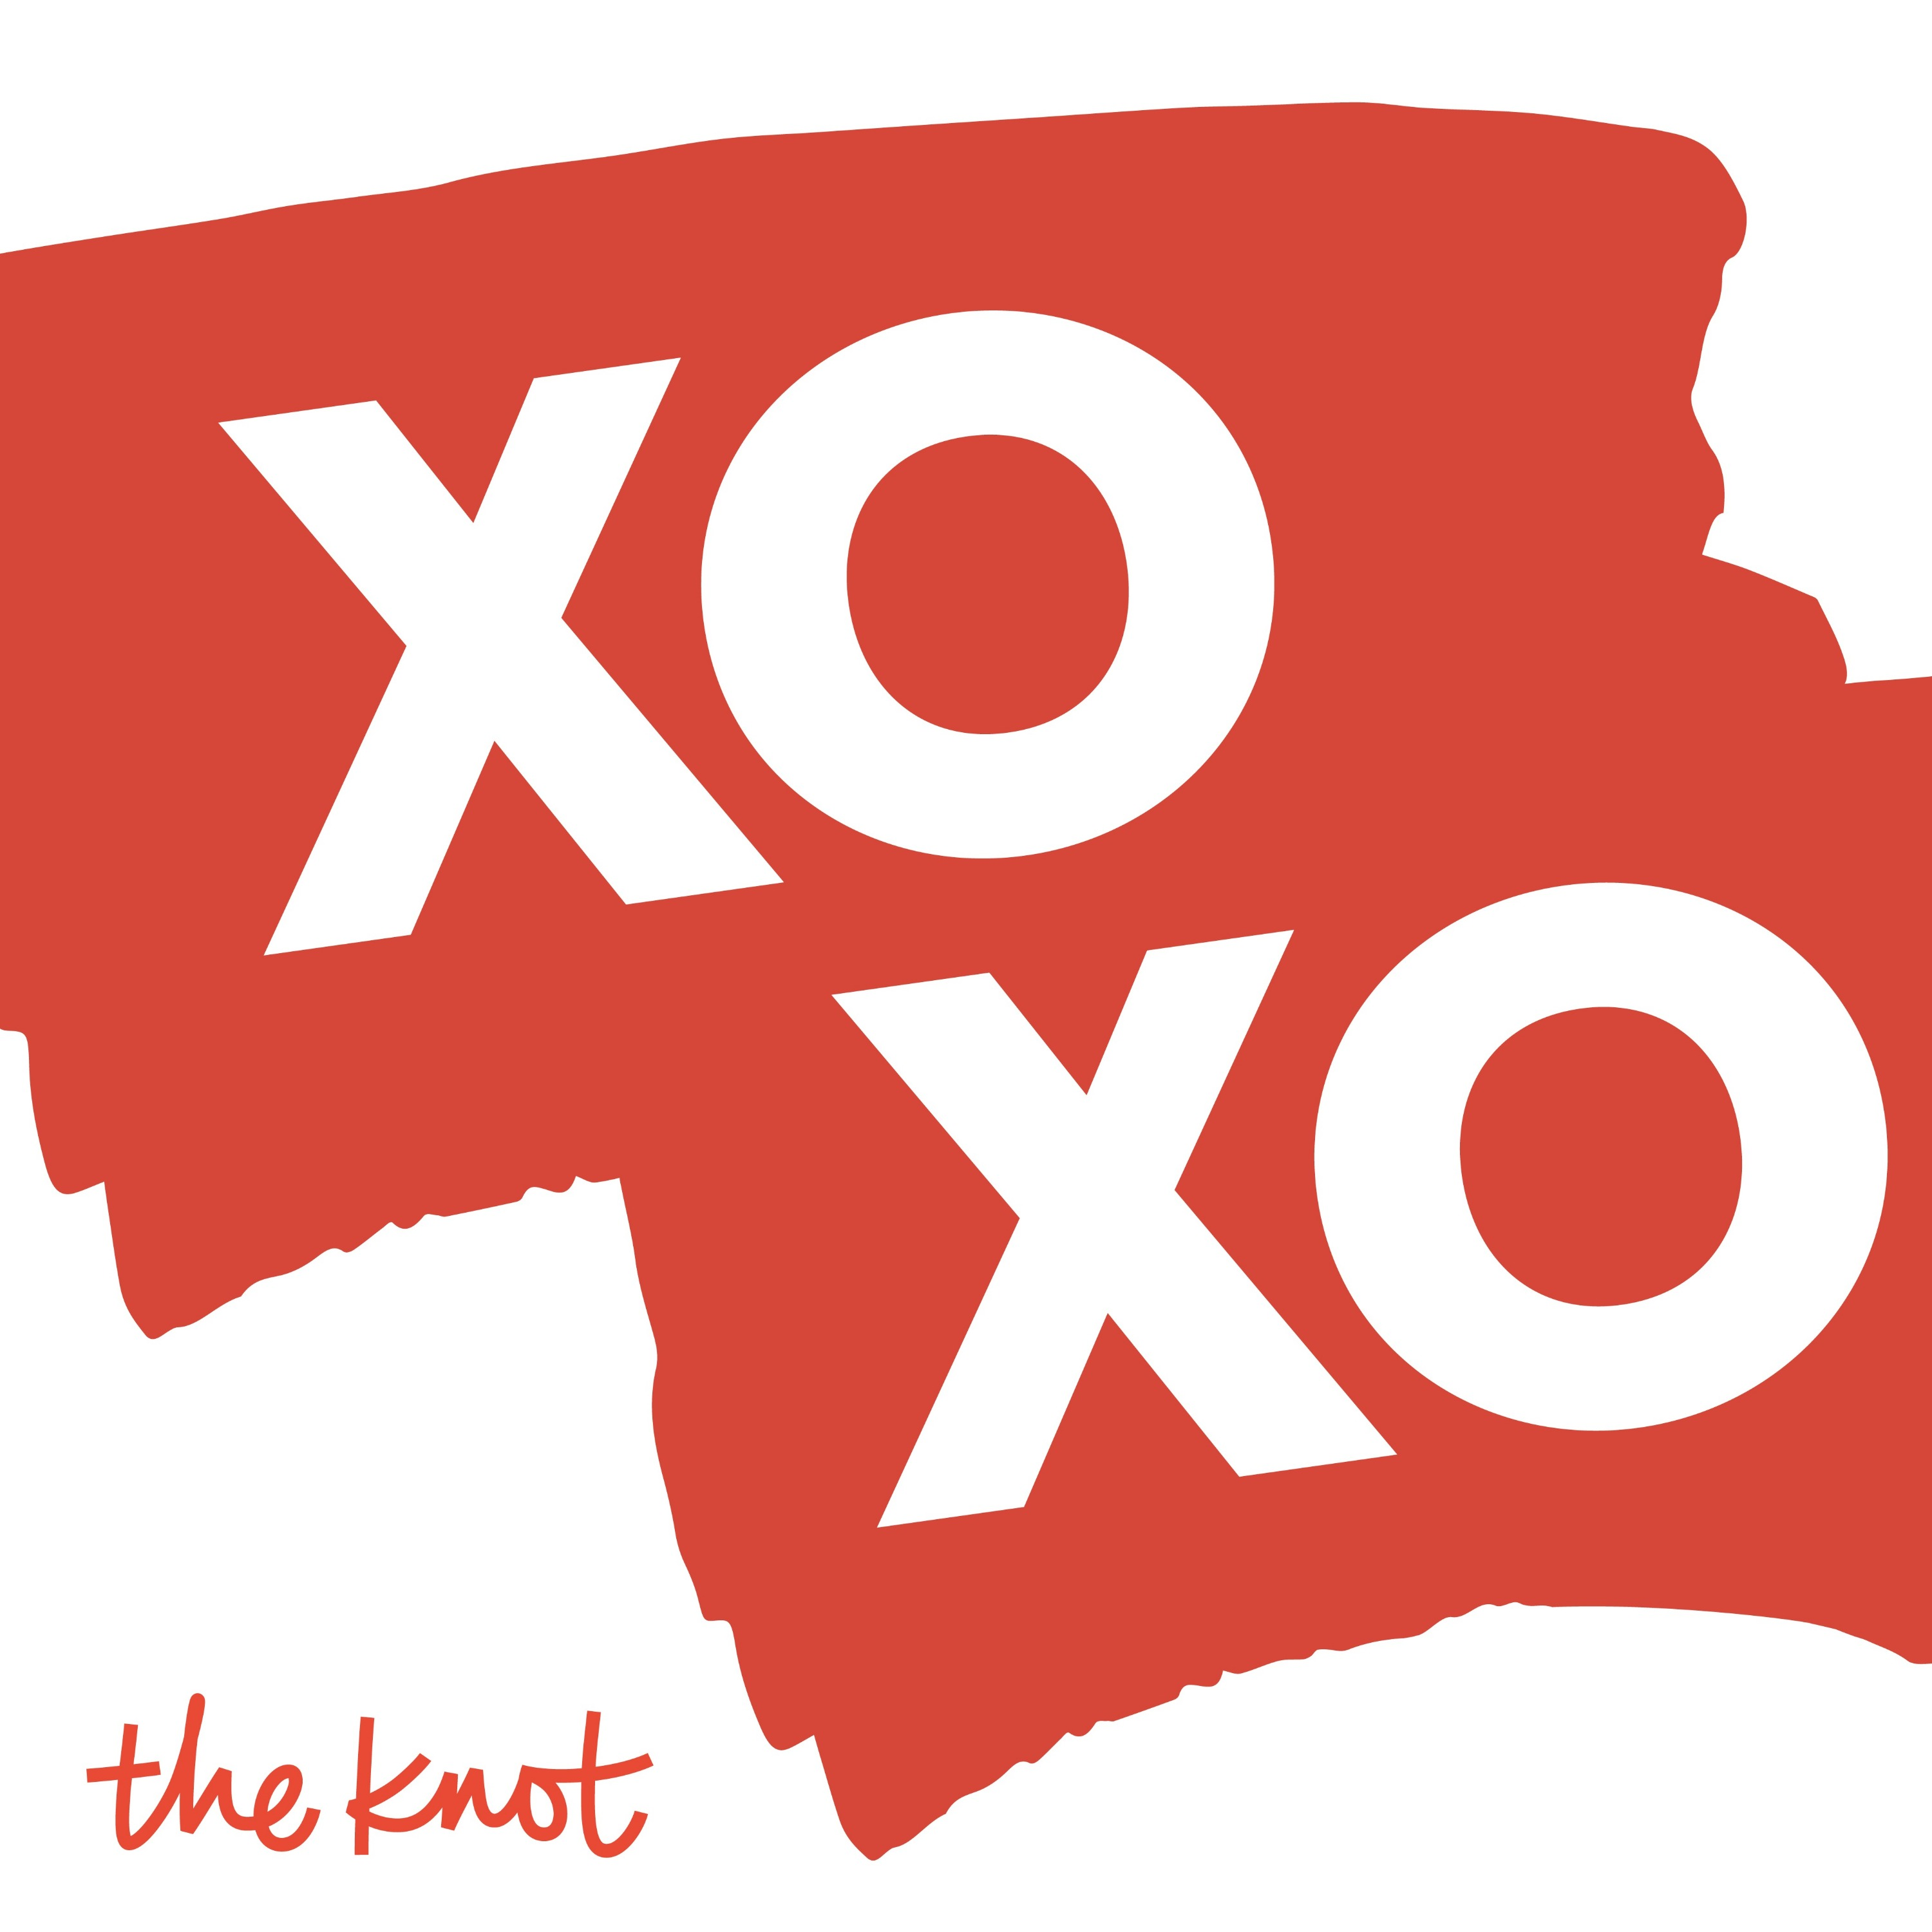 XOXO by The Knot